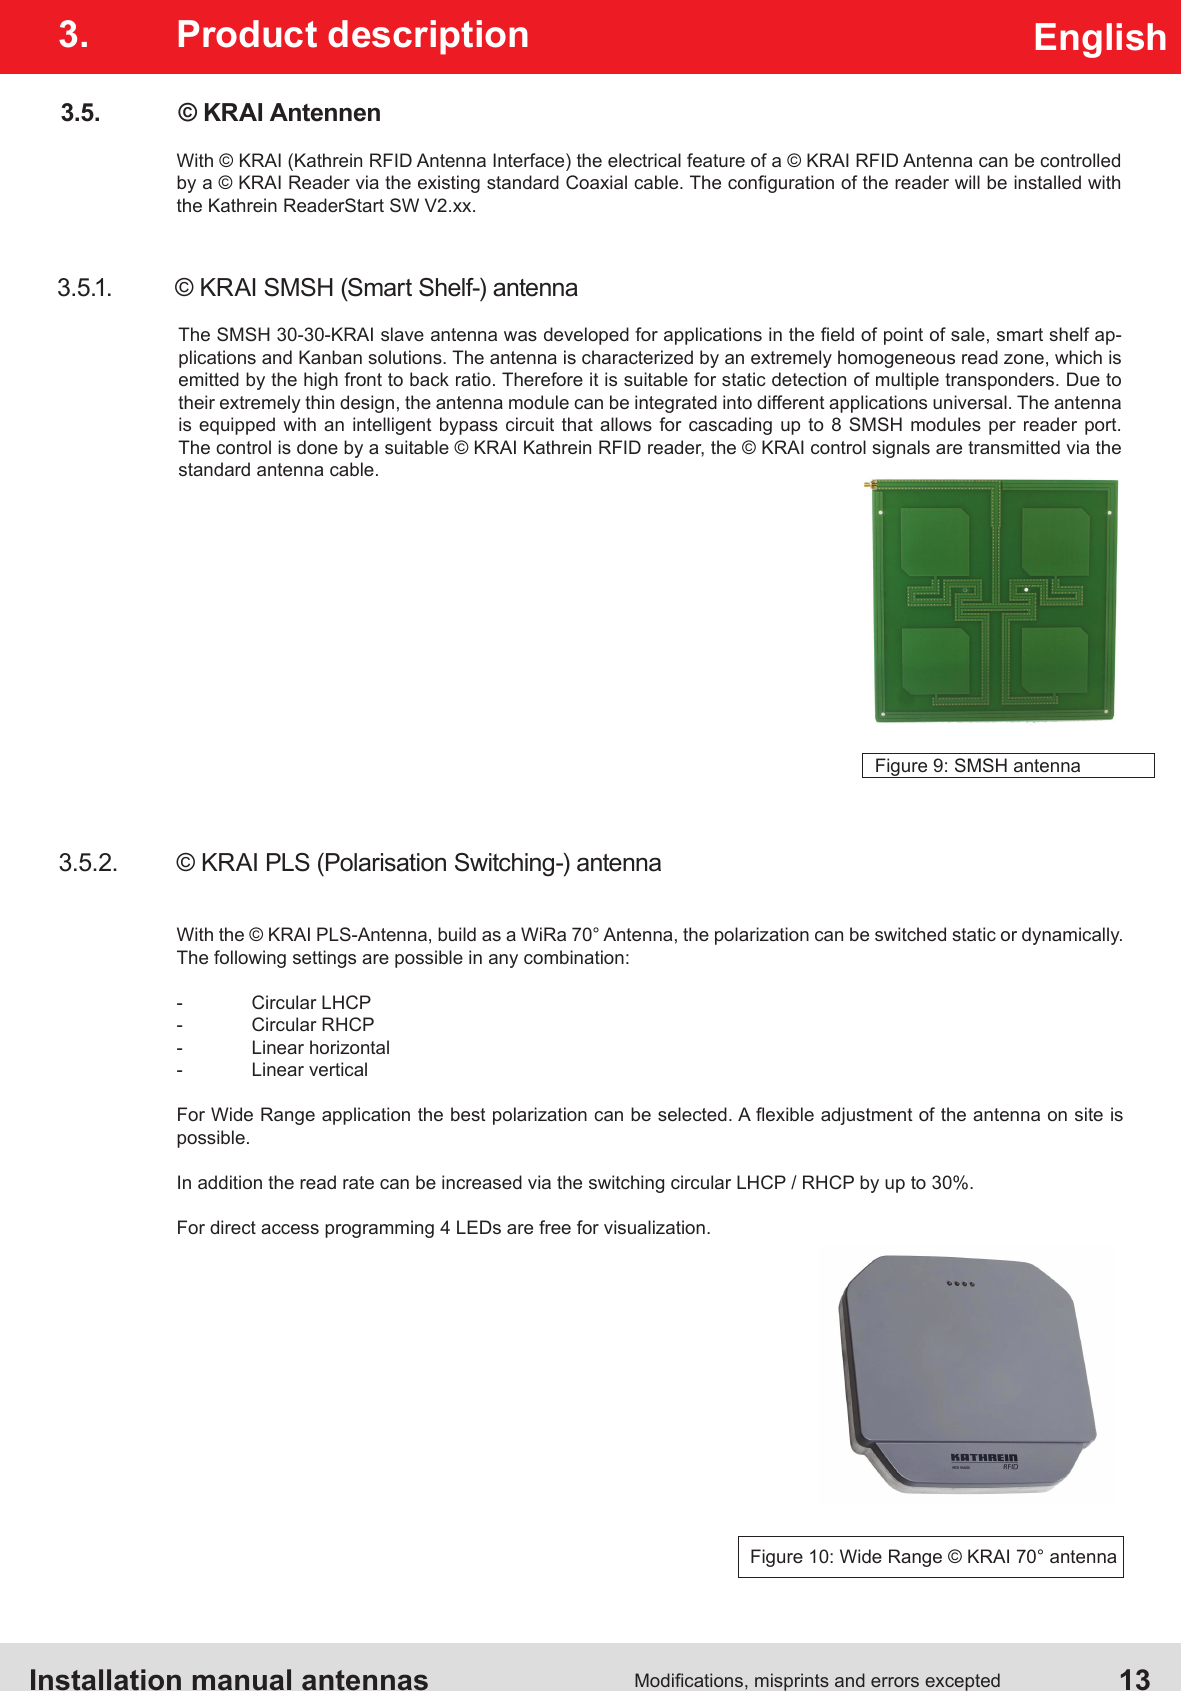 Installation manual antennas   13Modications, misprints and errors exceptedEnglish3.  Product description3.5.  © KRAI AntennenWith © KRAI (Kathrein RFID Antenna Interface) the electrical feature of a © KRAI RFID Antenna can be controlled by a © KRAI Reader via the existing standard Coaxial cable. The conguration of the reader will be installed with the Kathrein ReaderStart SW V2.xx.3.5.1.  © KRAI SMSH (Smart Shelf-) antennaThe SMSH 30-30-KRAI slave antenna was developed for applications in the eld of point of sale, smart shelf ap-plications and Kanban solutions. The antenna is characterized by an extremely homogeneous read zone, which is emitted by the high front to back ratio. Therefore it is suitable for static detection of multiple transponders. Due to their extremely thin design, the antenna module can be integrated into different applications universal. The antenna is equipped with an intelligent bypass circuit that allows for cascading up to 8 SMSH modules per reader port. The control is done by a suitable © KRAI Kathrein RFID reader, the © KRAI control signals are transmitted via the standard antenna cable.Figure 9: SMSH antenna3.5.2.  © KRAI PLS (Polarisation Switching-) antennaWith the © KRAI PLS-Antenna, build as a WiRa 70° Antenna, the polarization can be switched static or dynamically. The following settings are possible in any combination:-  Circular LHCP-  Circular RHCP-  Linear horizontal-  Linear verticalFor Wide Range application the best polarization can be selected. A exible adjustment of the antenna on site is possible. In addition the read rate can be increased via the switching circular LHCP / RHCP by up to 30%.For direct access programming 4 LEDs are free for visualization.Figure 10: Wide Range © KRAI 70° antenna